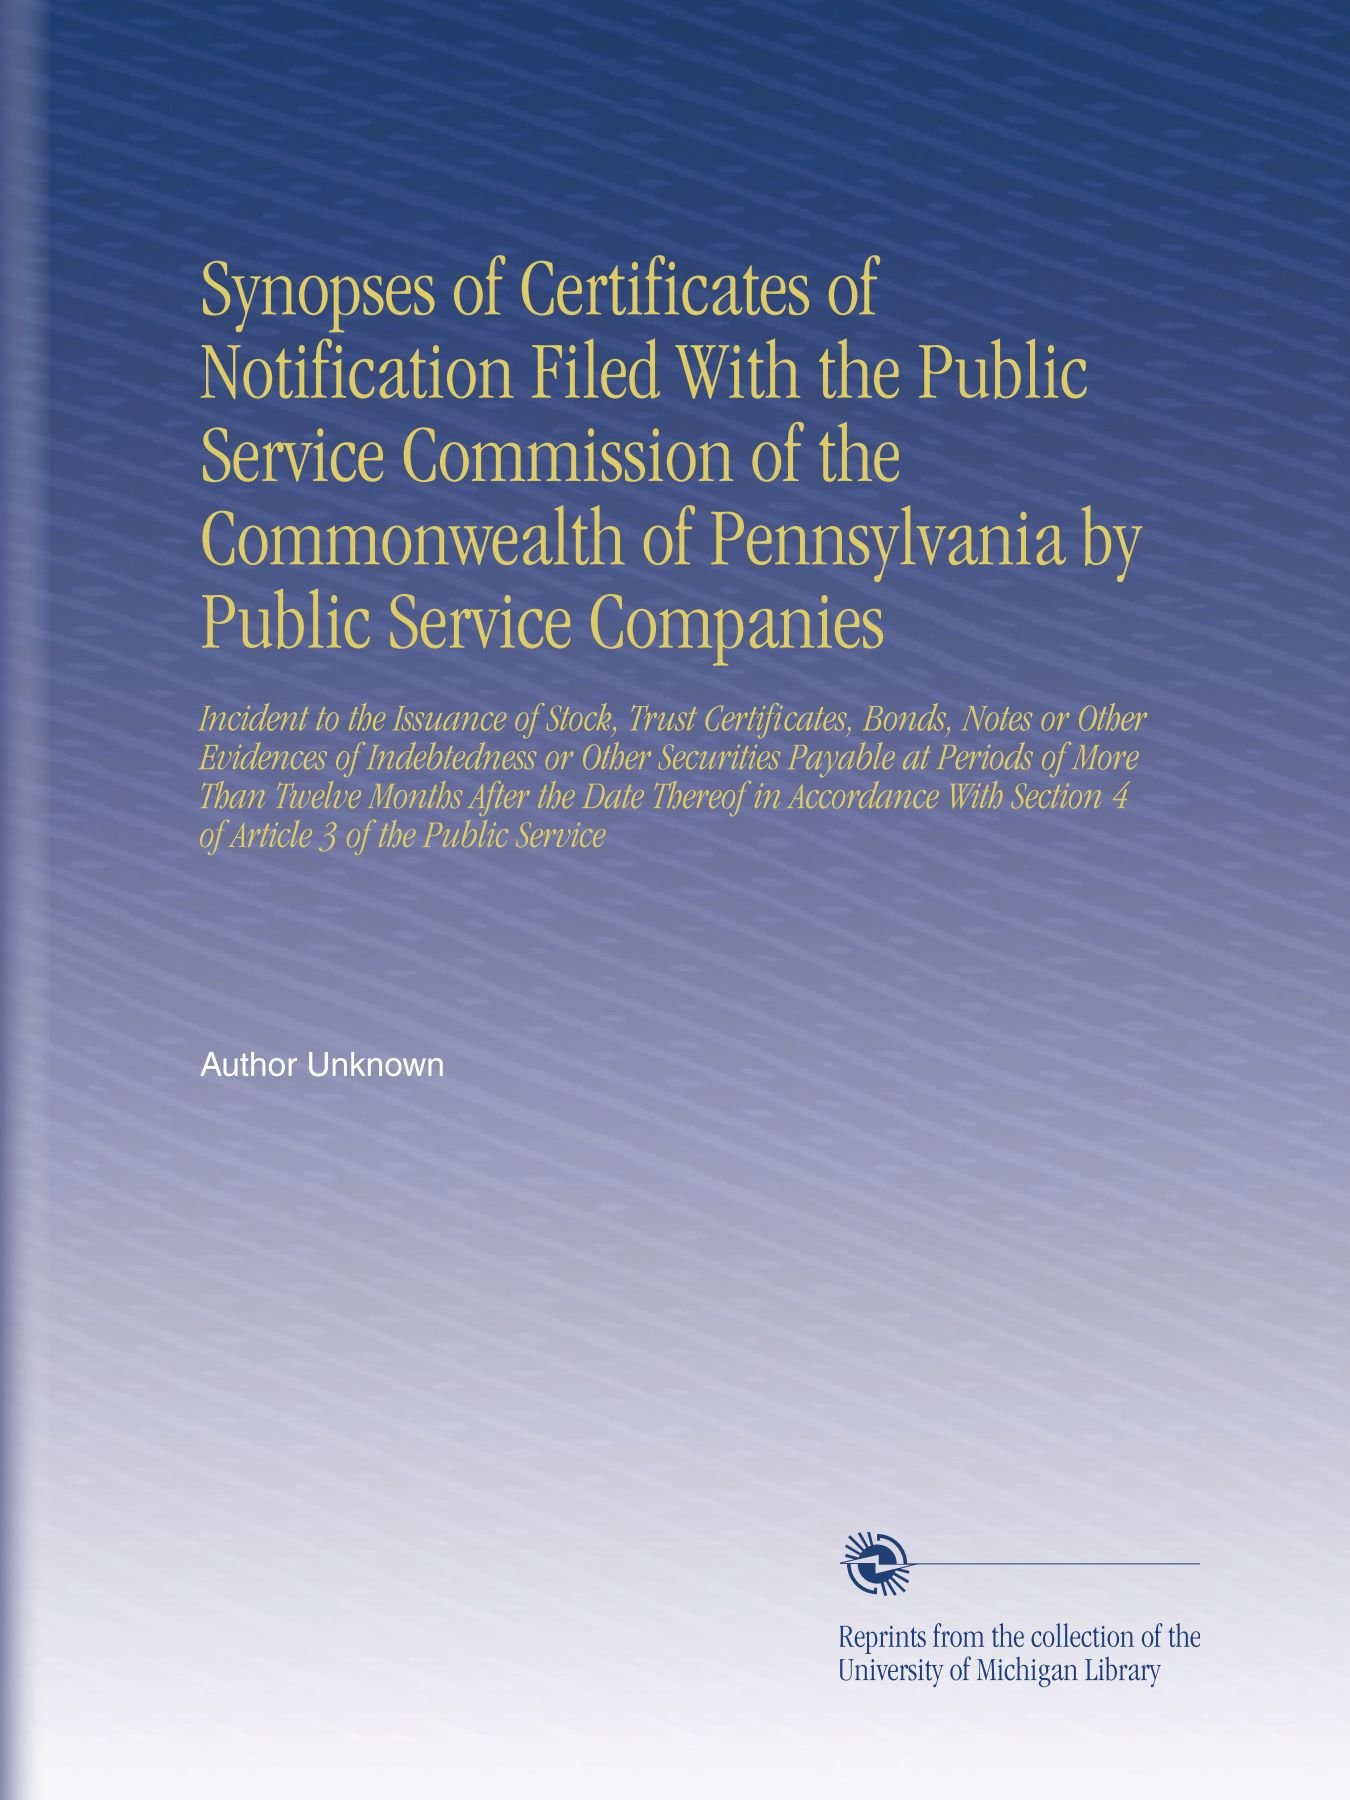 Download Synopses of Certificates of Notification Filed With the Public Service Commission of the Commonwealth of Pennsylvania by Public Service Companies: ... Section 4 of Article 3 of the Public Service ebook